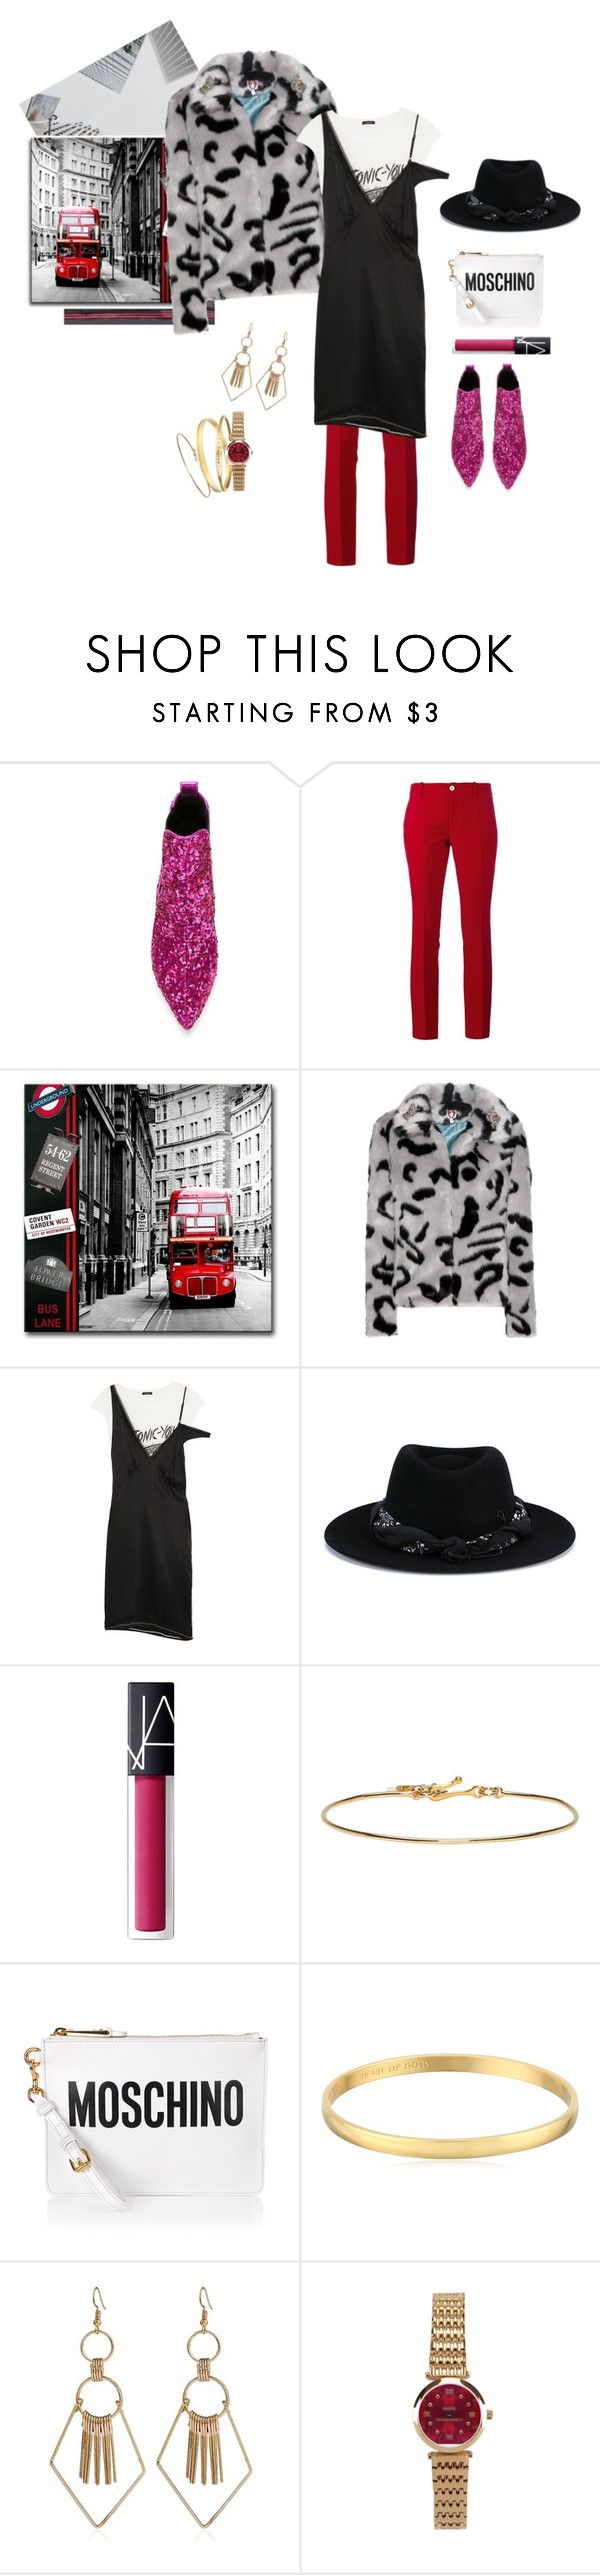 """""""London return"""" by manyfaces on Polyvore featuring мода, Marc Jacobs, Gucci, Shrimps, R13, Maison Michel, NARS Cosmetics, Isabel Marant, Moschino и Kate Spade"""